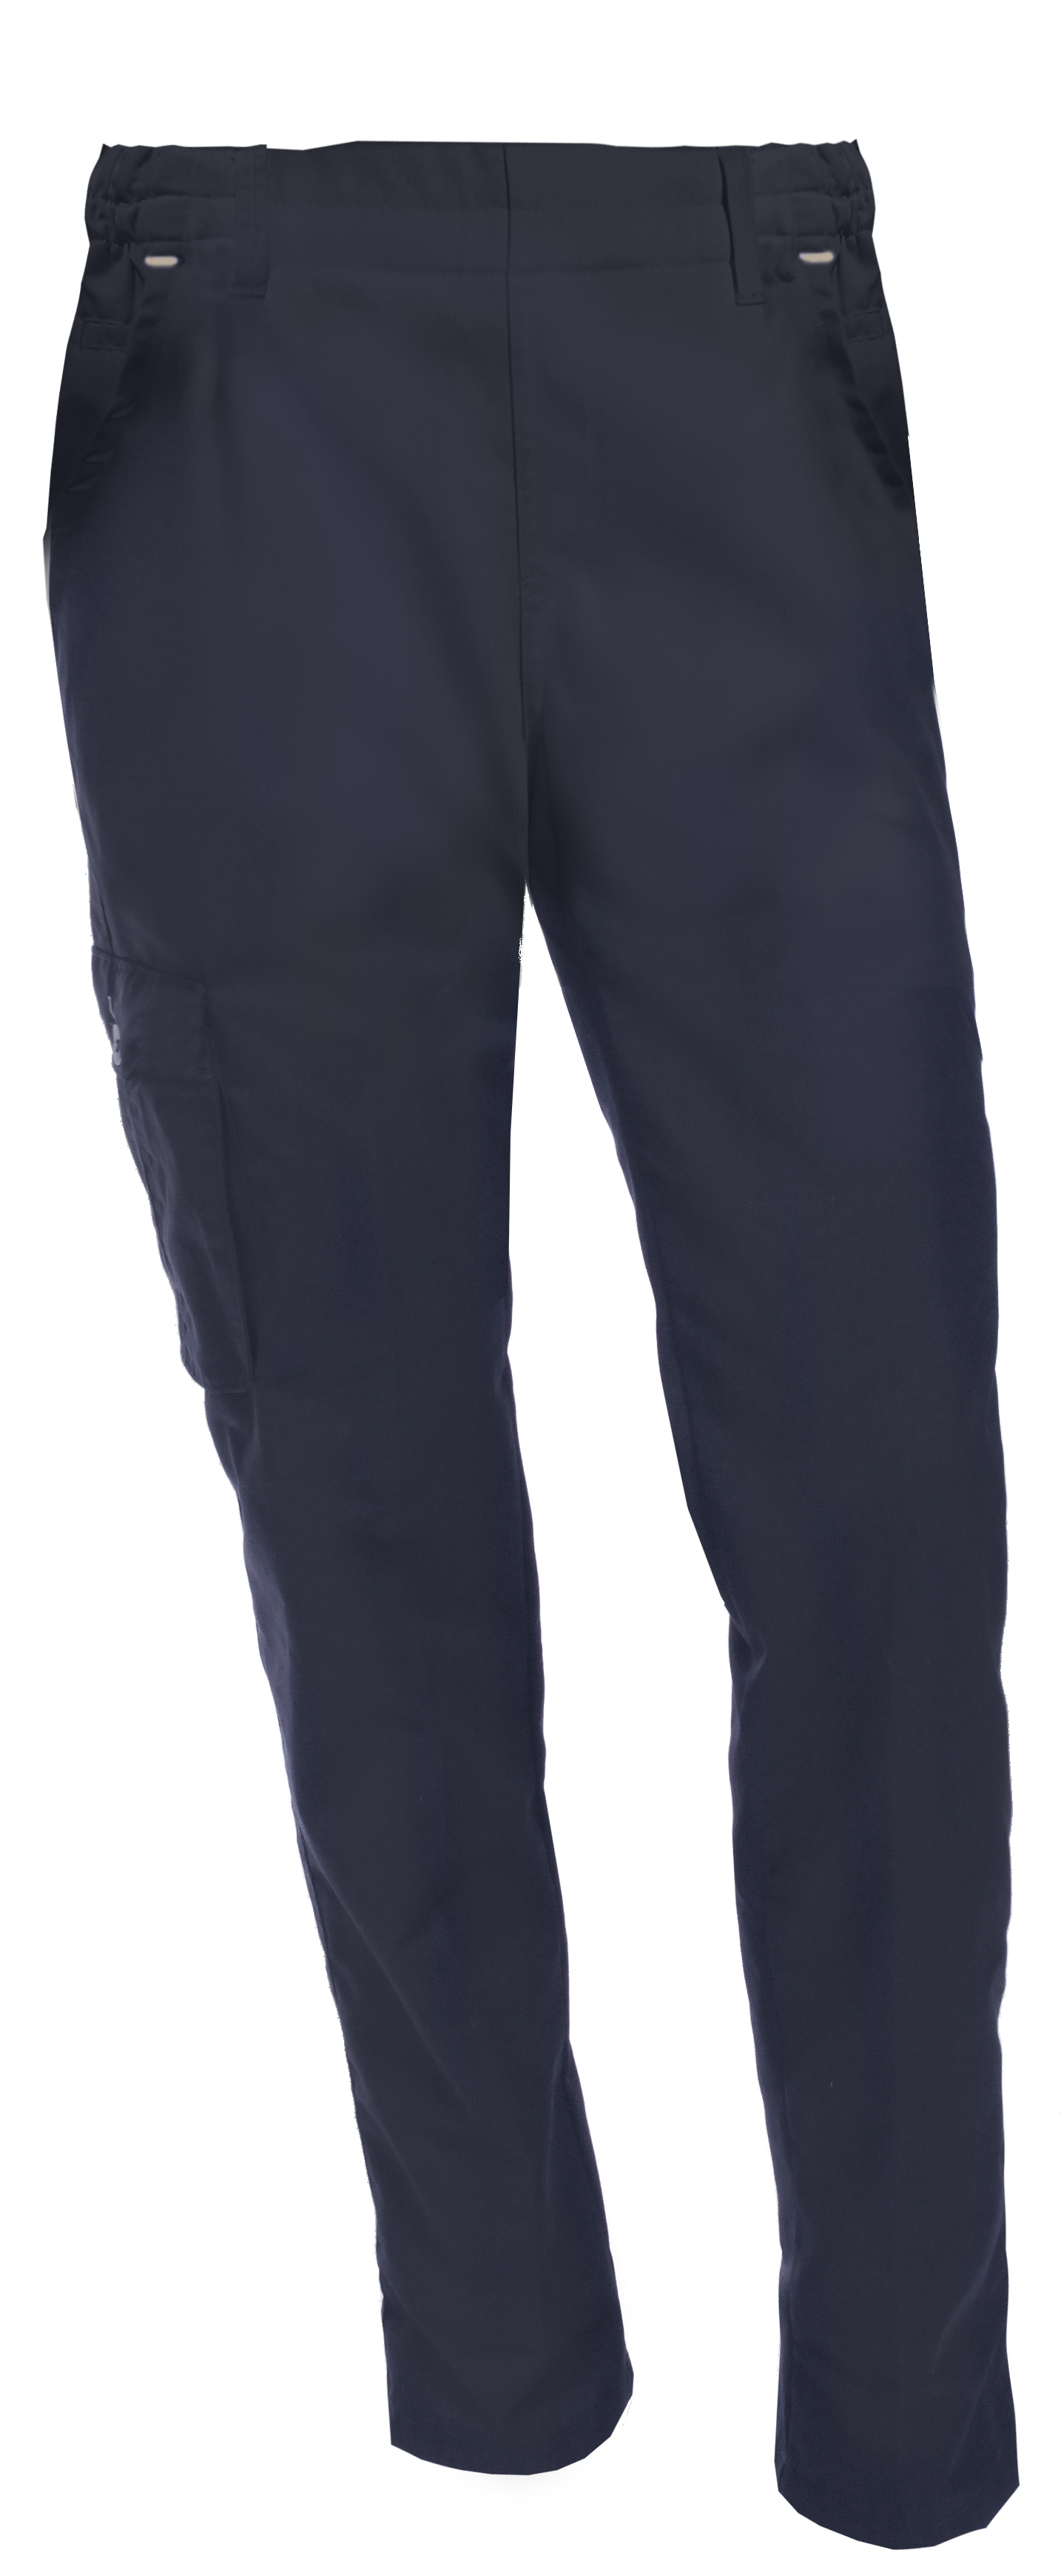 Unisex Pull-on Chino, Perfect fit (505021200) - NOOS